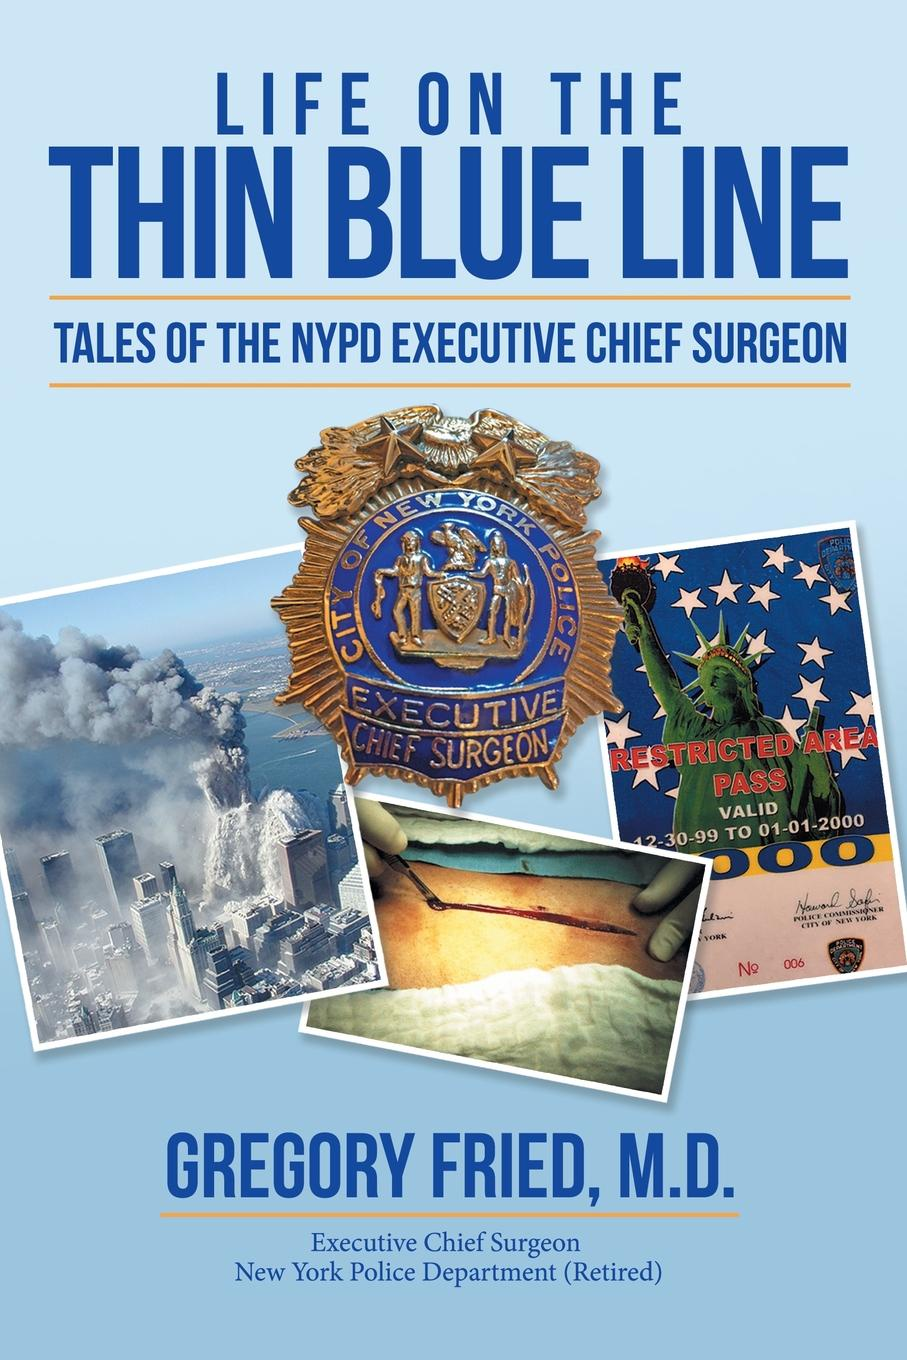 M.D. Gregory Fried Life on the Thin Blue Line. Tales of the NYPD Executive Chief Surgeon fractured lines out of line 4